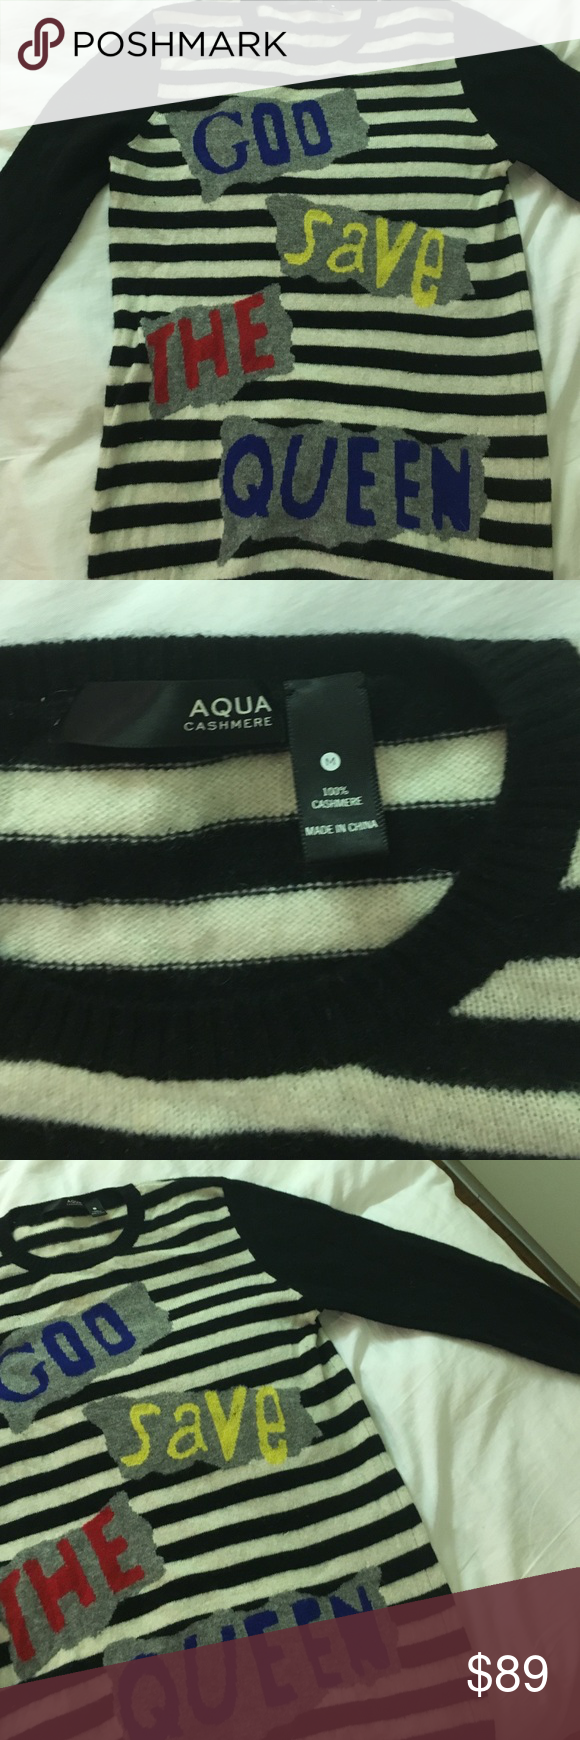 Cashmere Sweater God Save The Queen! No holes no moth holes or anything. Only worn a handful of times. Incredibly soft. Amazing condition. Aqua Sweaters Crew & Scoop Necks